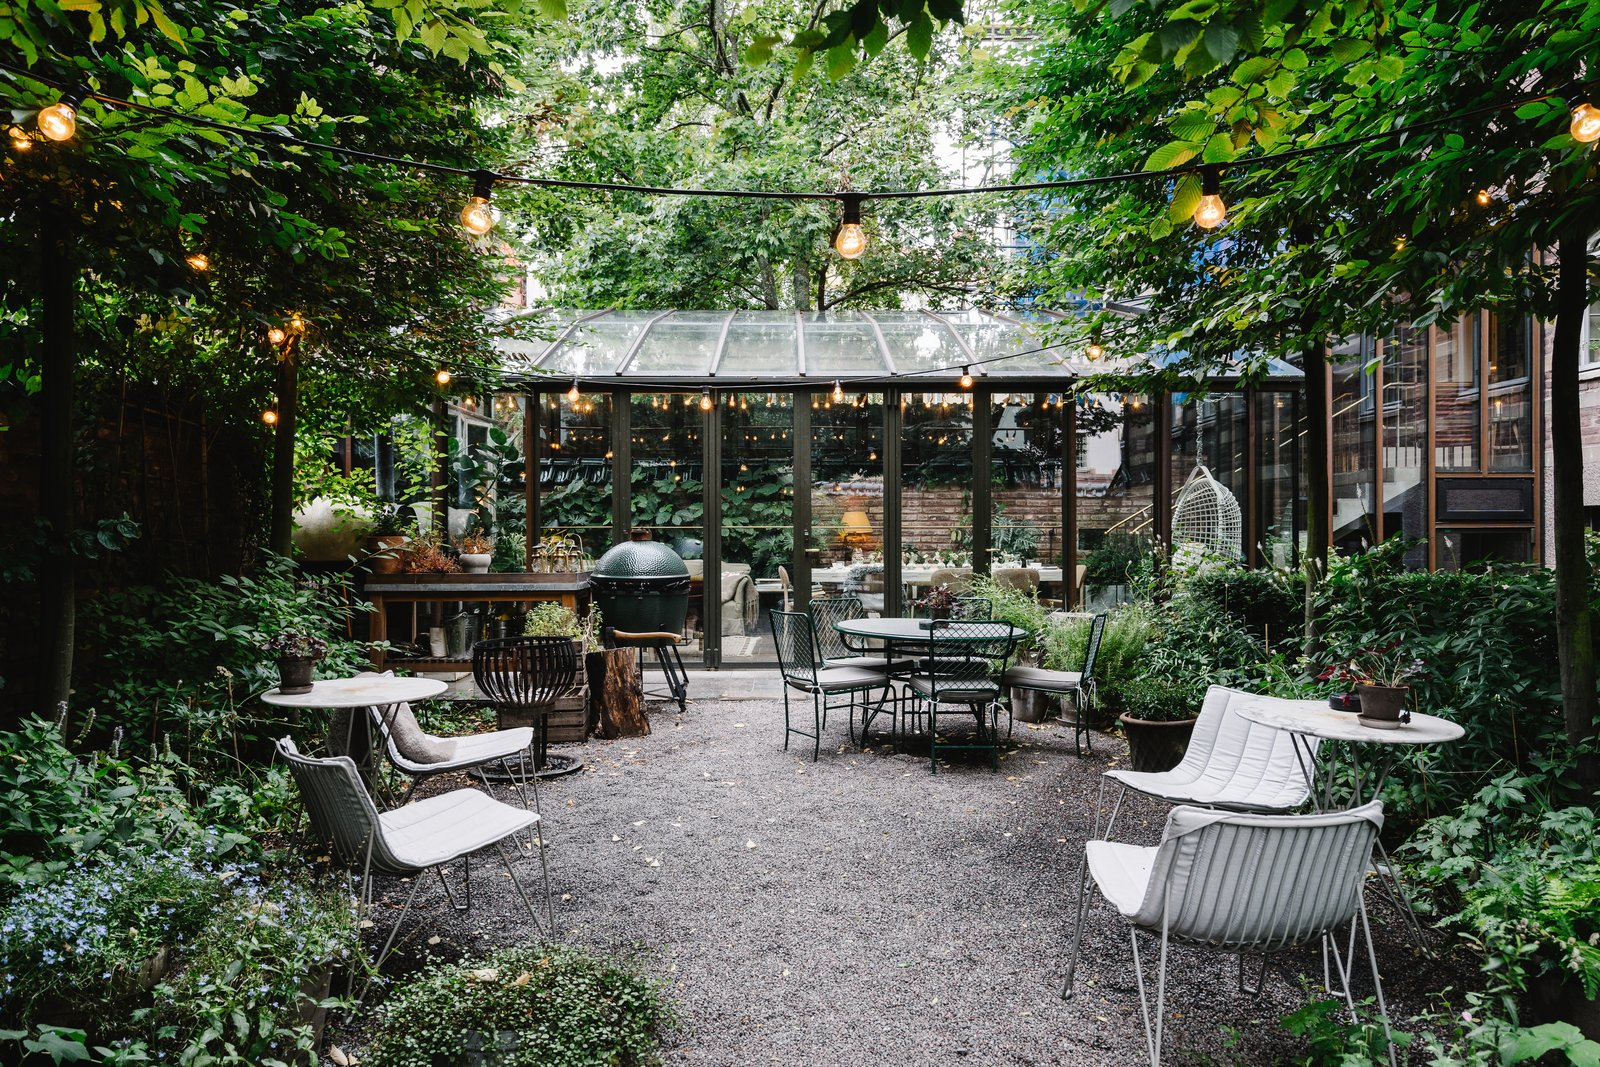 The courtyard holds outdoor seating and a fire pit. Ett Hem's chefs grill here for the evening meals.  Photo 10 of 13 in A Visual Journey Through Stockholm's Hotel Ett Hem